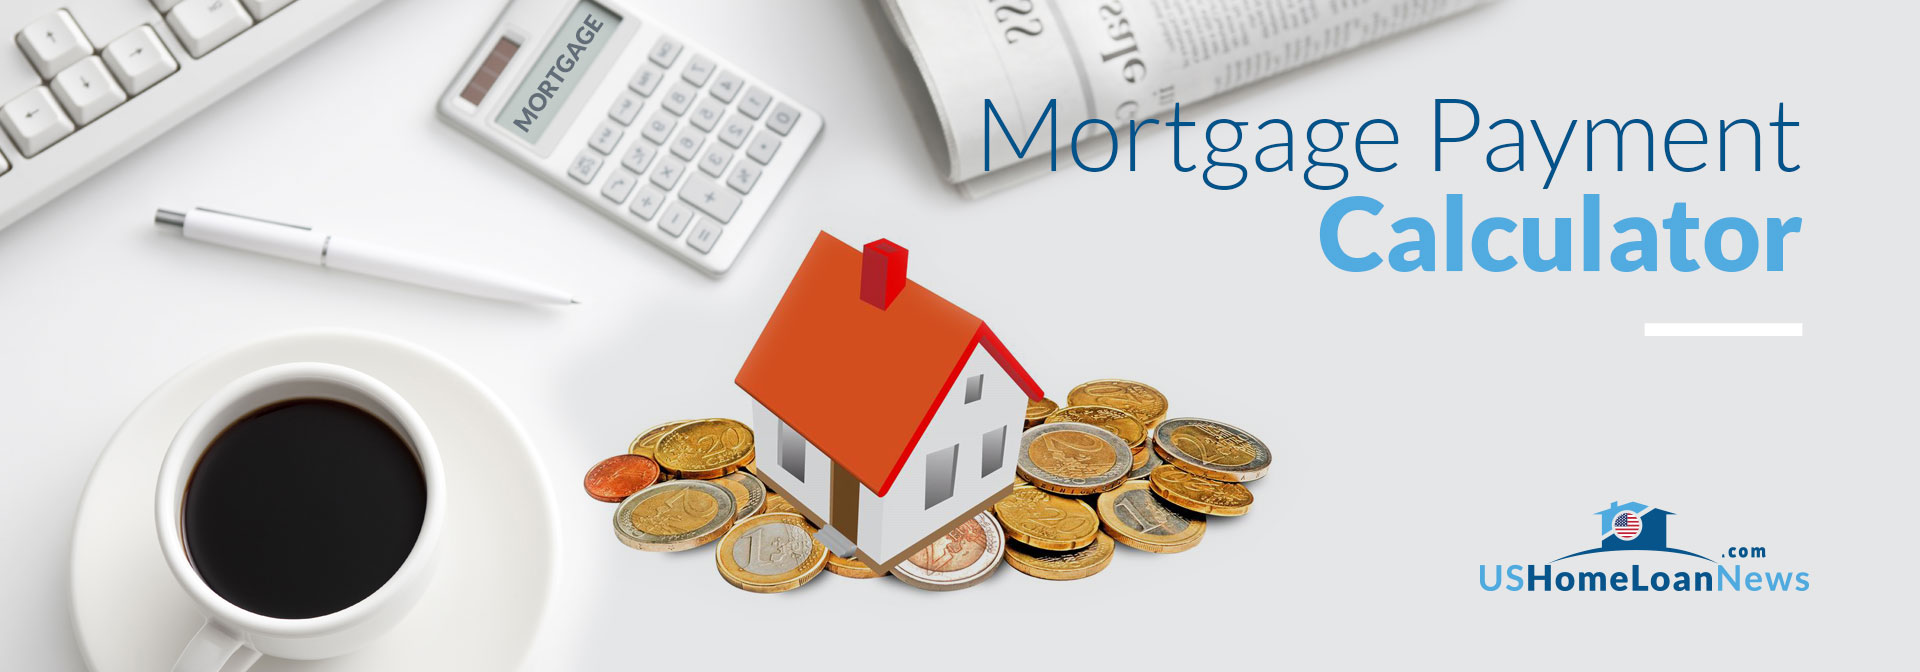 Mortgage Payment Calculator – Work Out Your Monthly Mortgage Payments from US Home Loan News